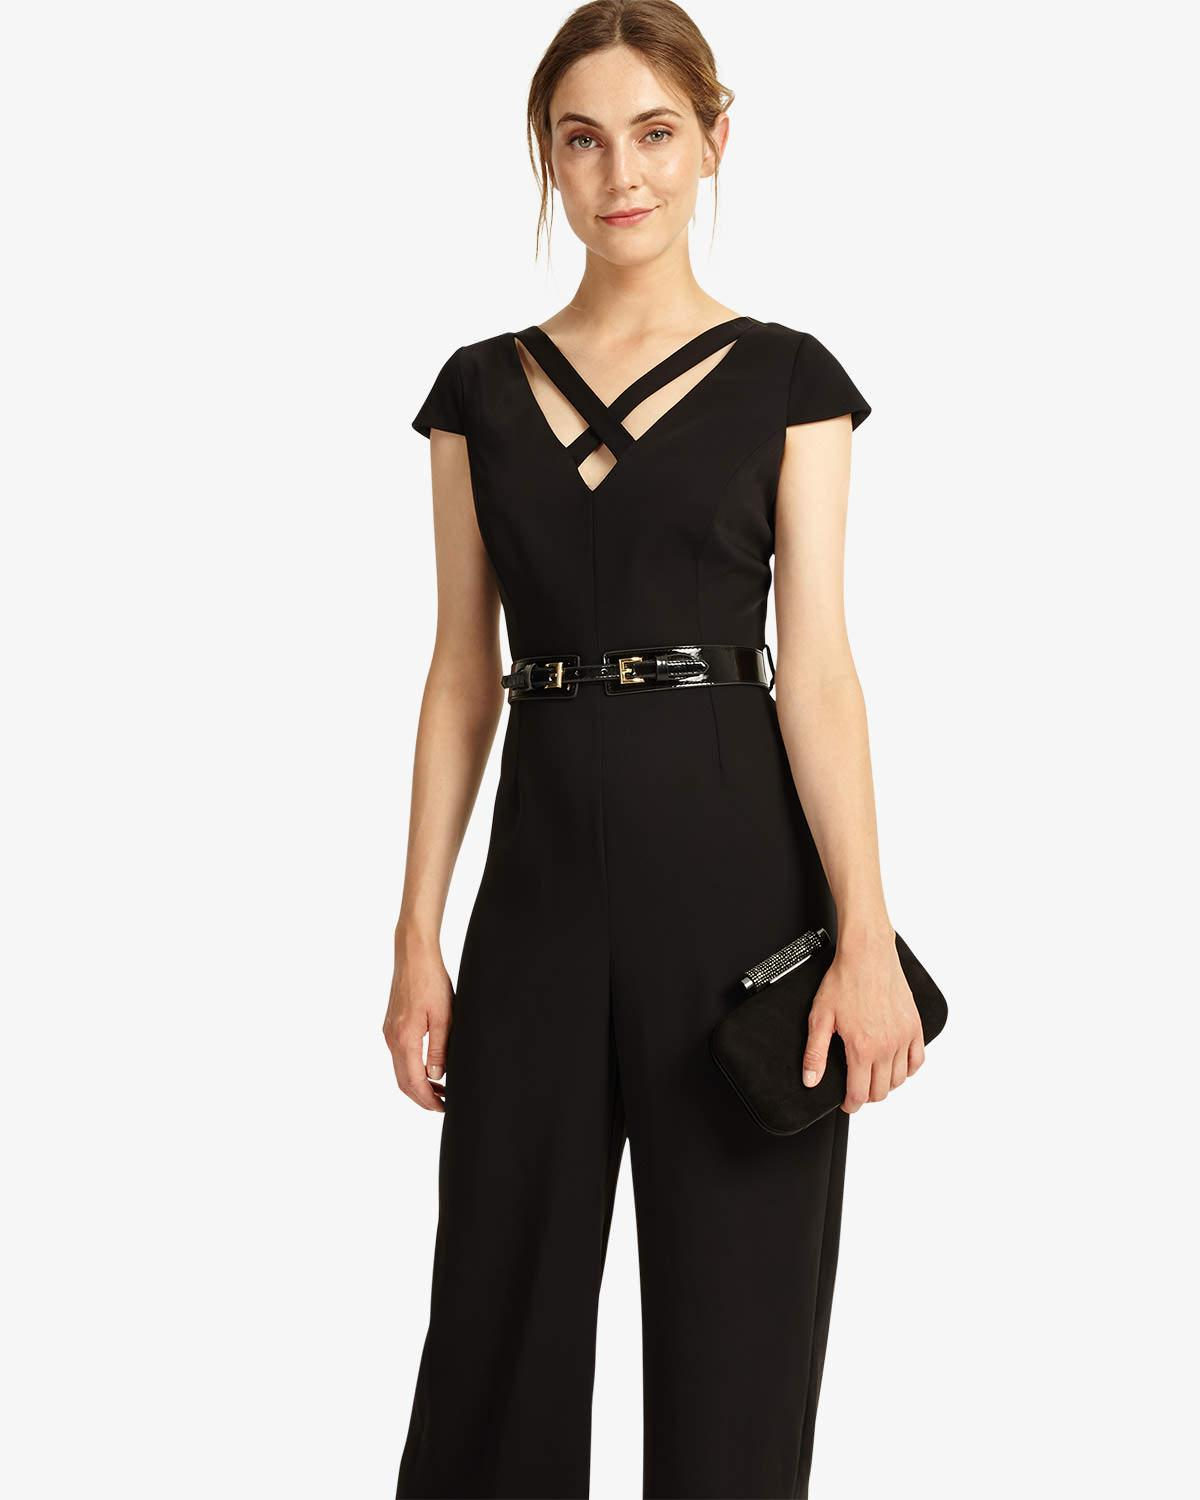 65f1229aedd Phase Eight Anya Belted Jumpsuit in Black - Lyst